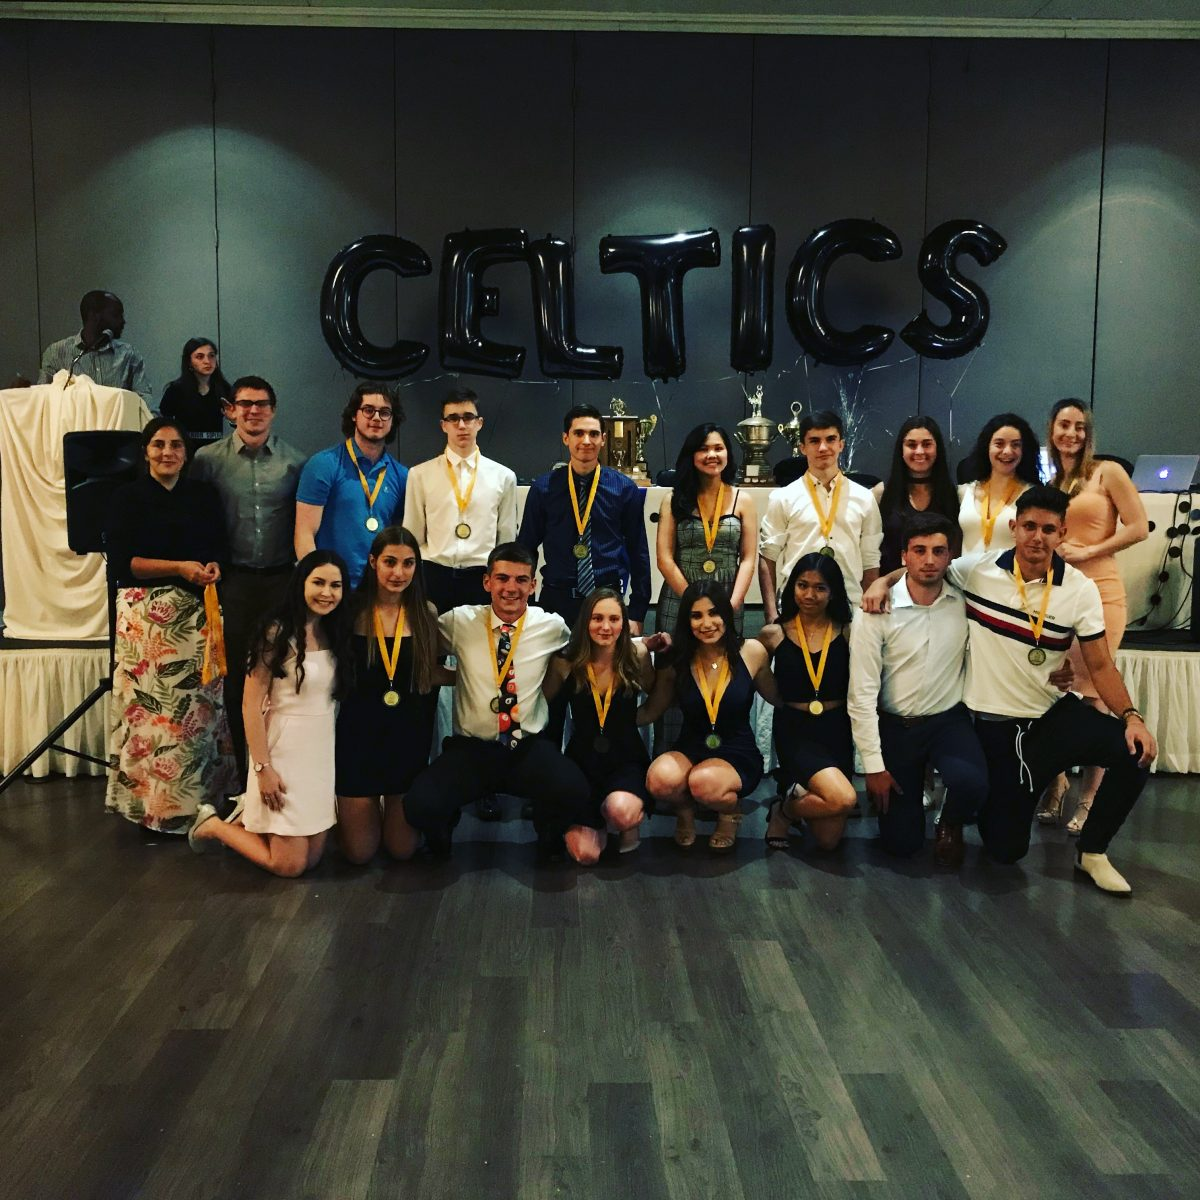 Another Celtics Athletic Banquet Celebration for the Books